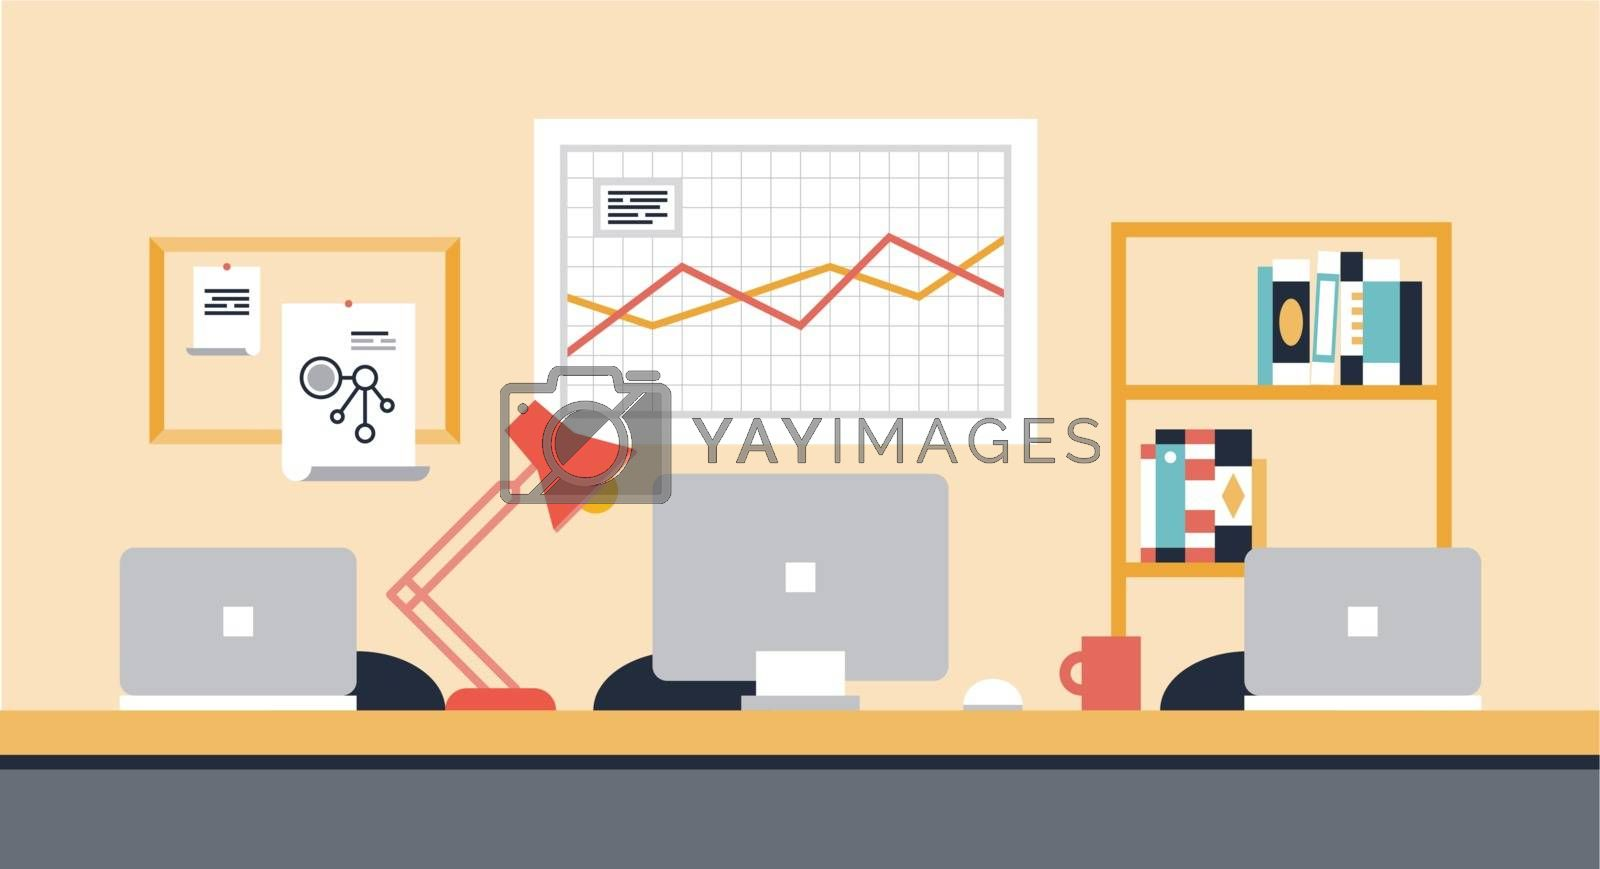 Flat design modern vector illustration of stylish workspace interior for team collaboration or people co-working space with office objects, equipment and modern devices.